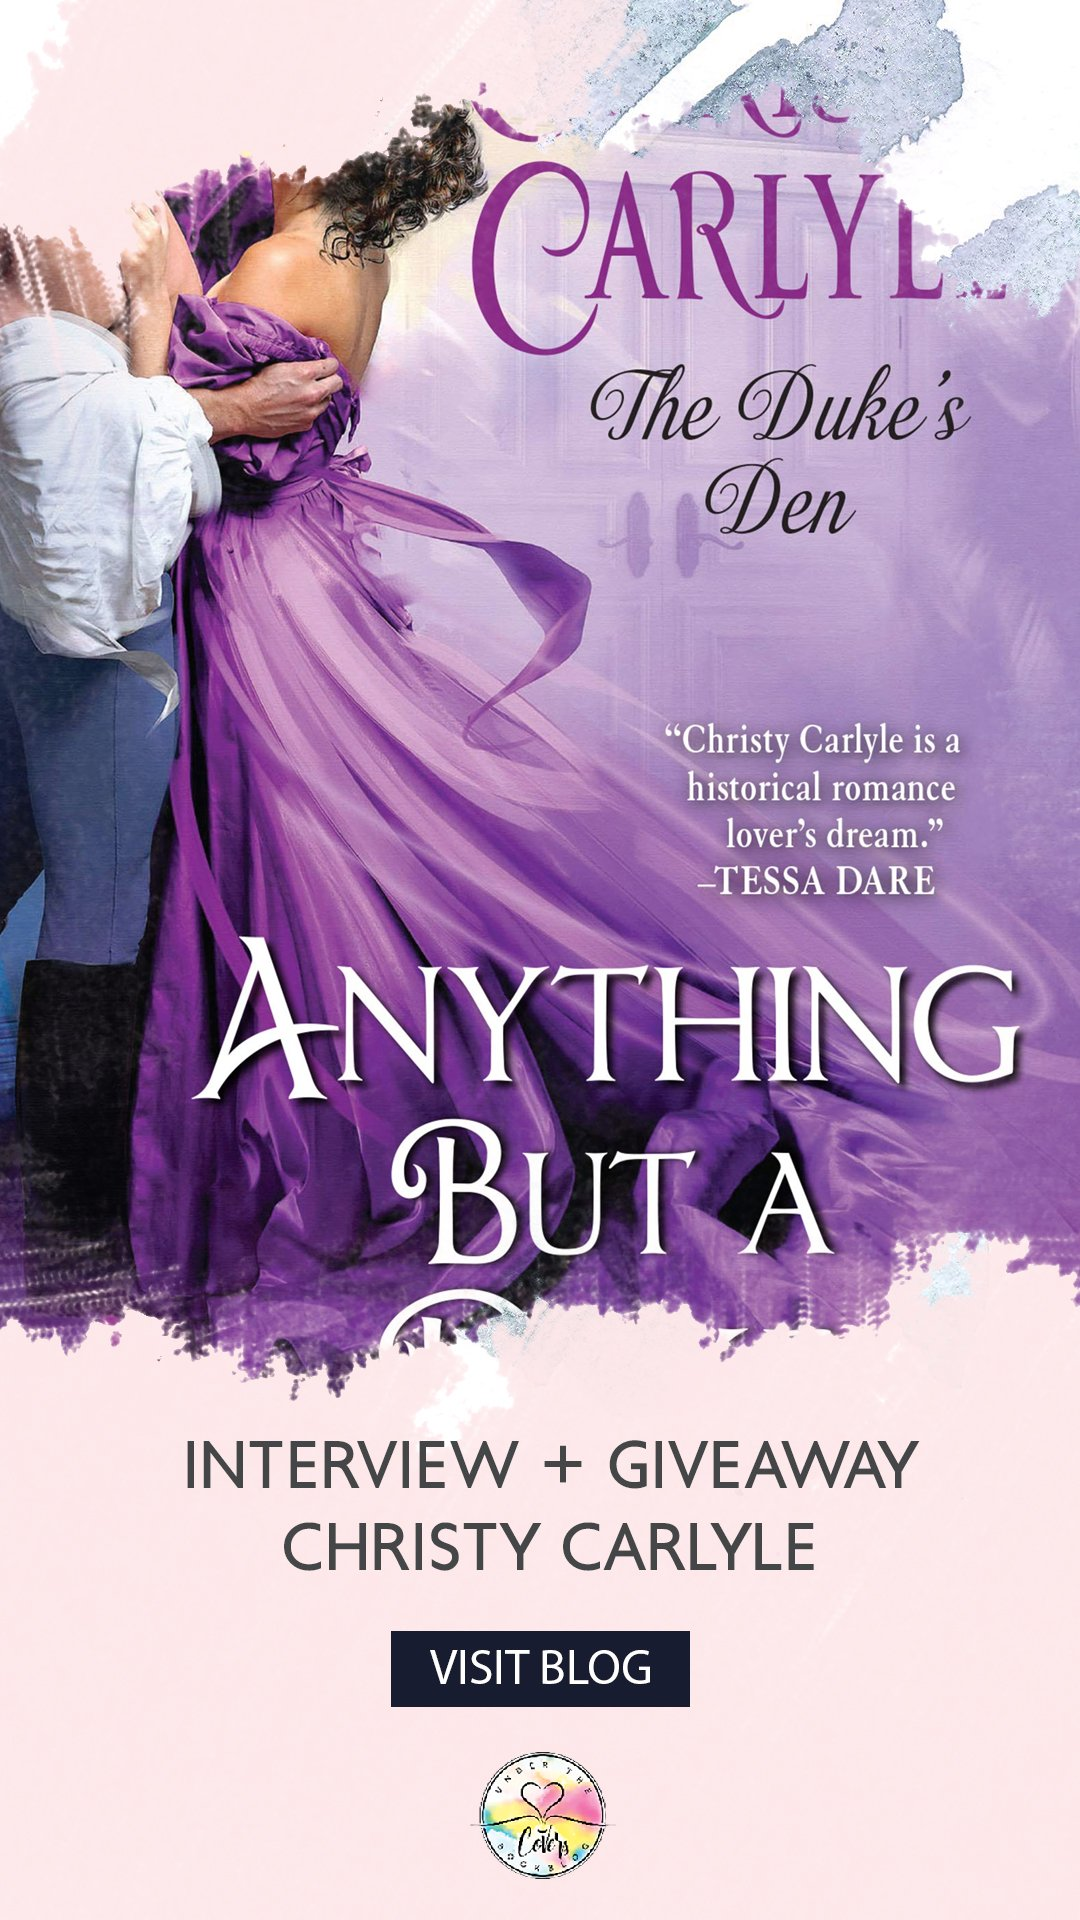 Interview and Giveaway with Christy Carlyle